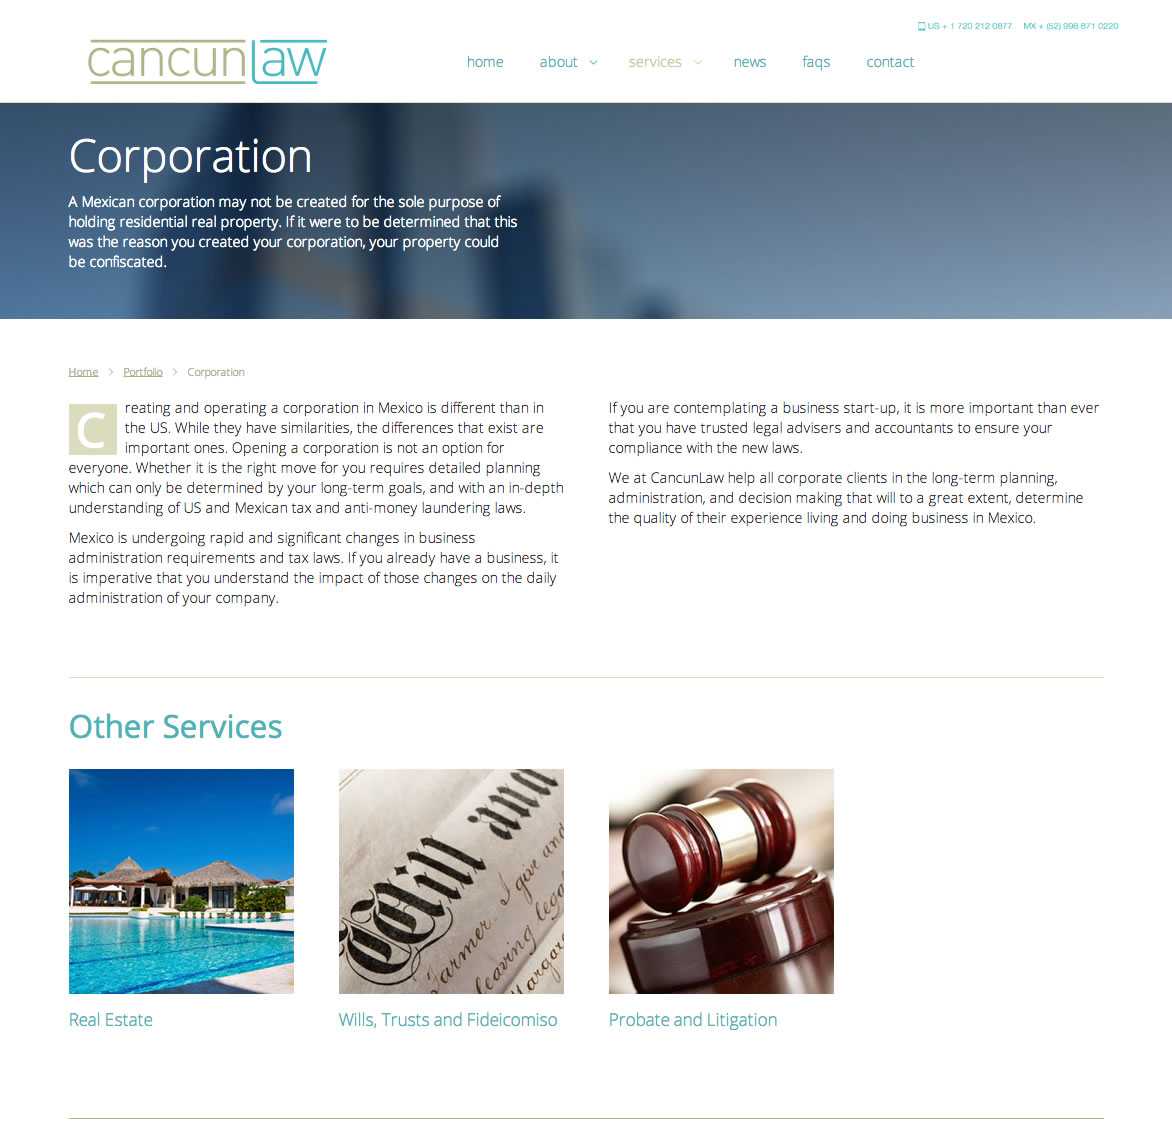 Cancun Law - Corporation Page